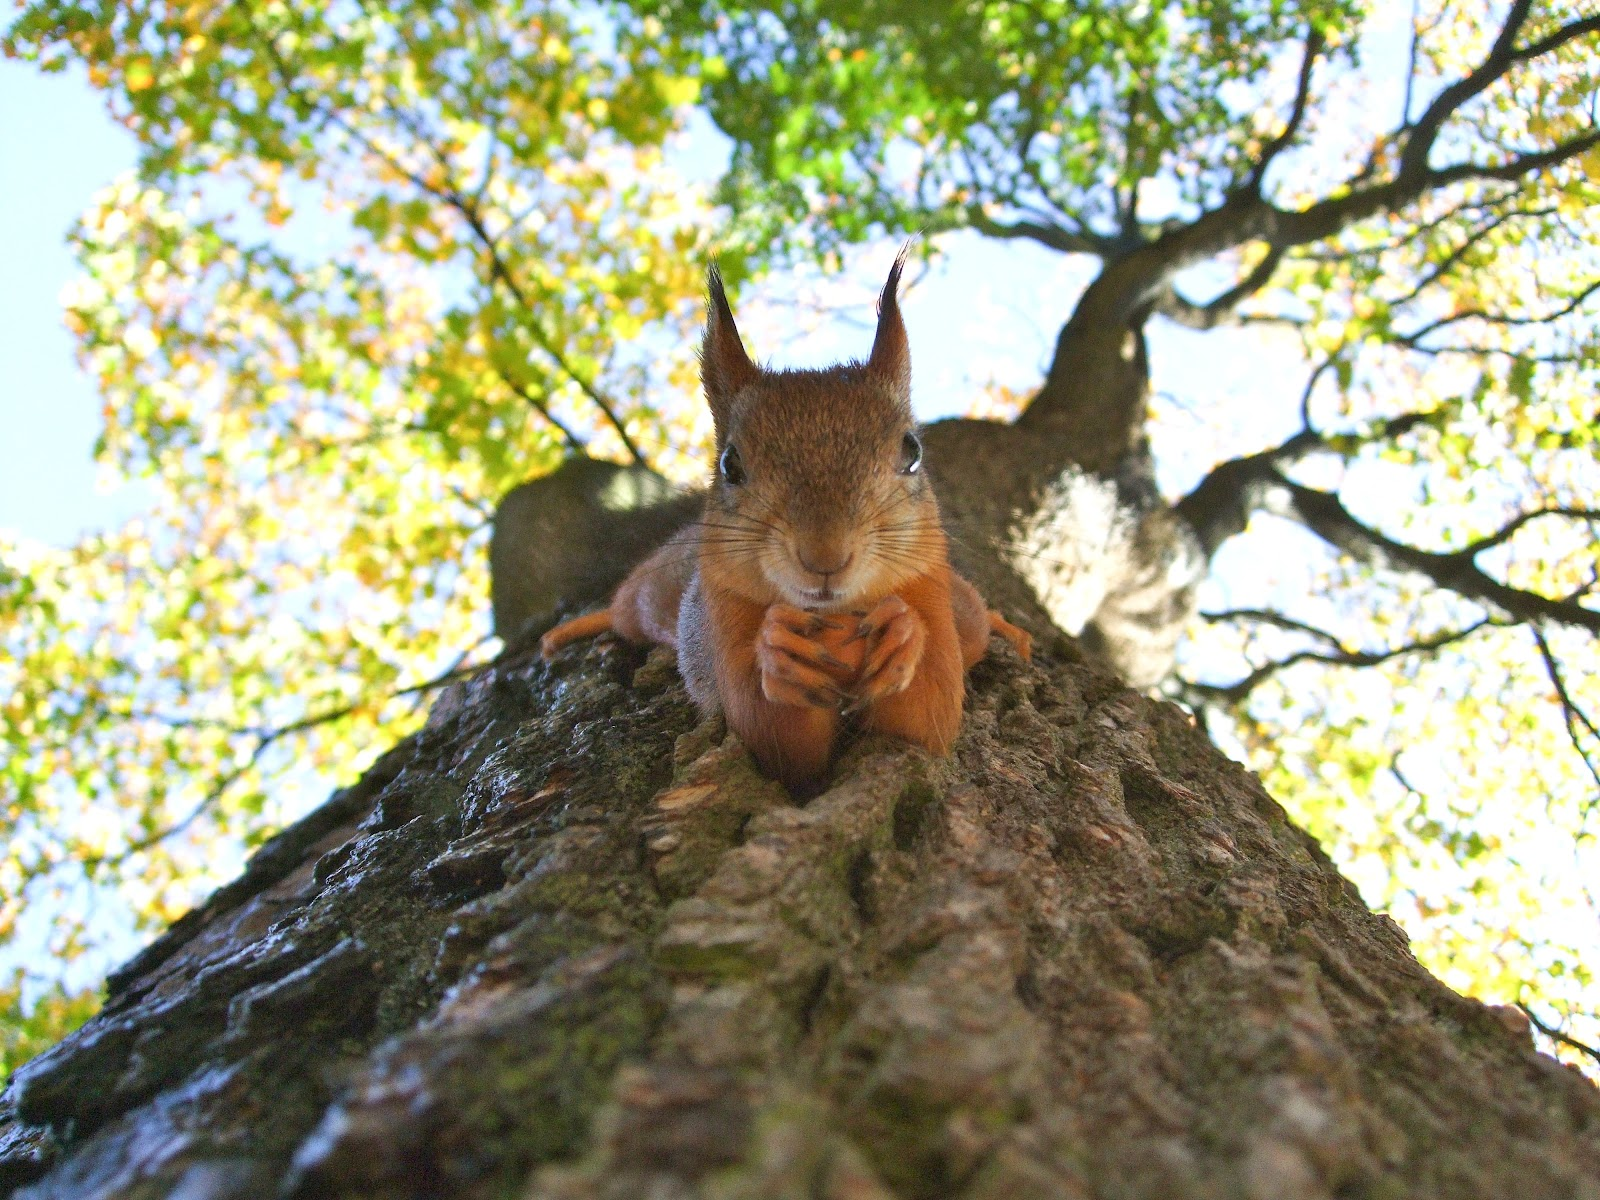 Squirrel on tree trunk looking downward at camera